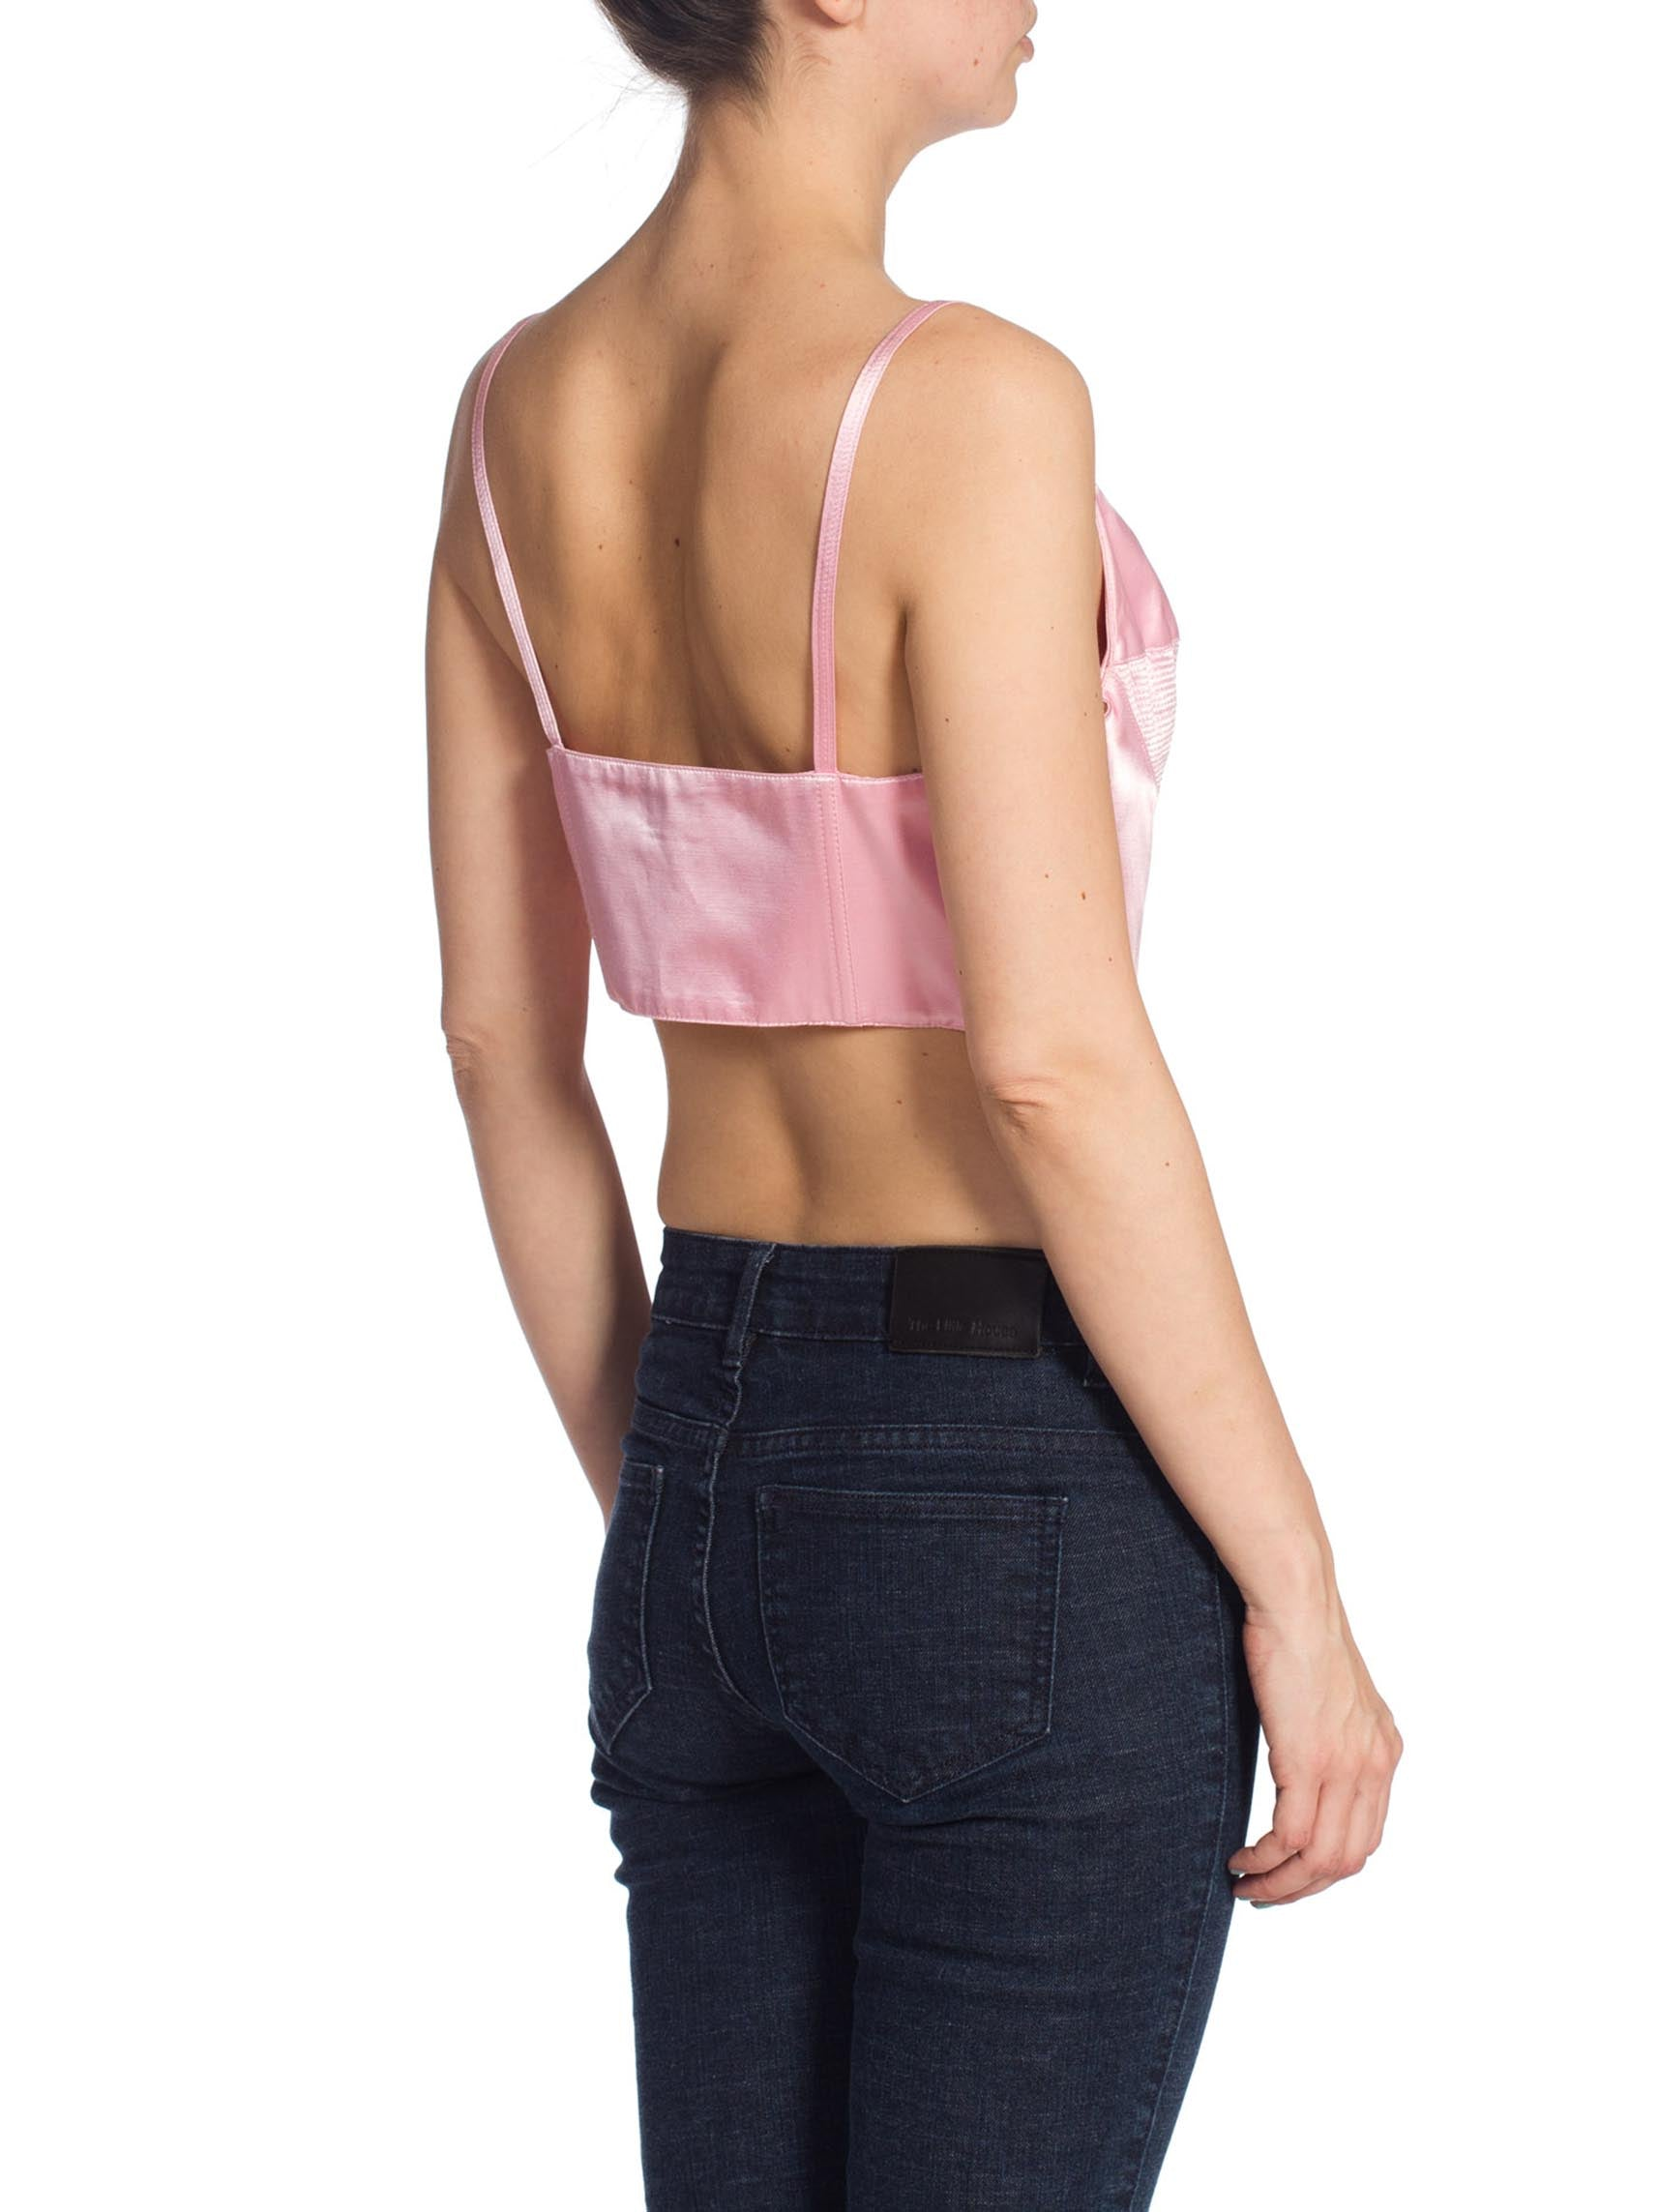 1990'S GIANNI VERSACE Baby Pink Satin Bra Top Buster Bustier